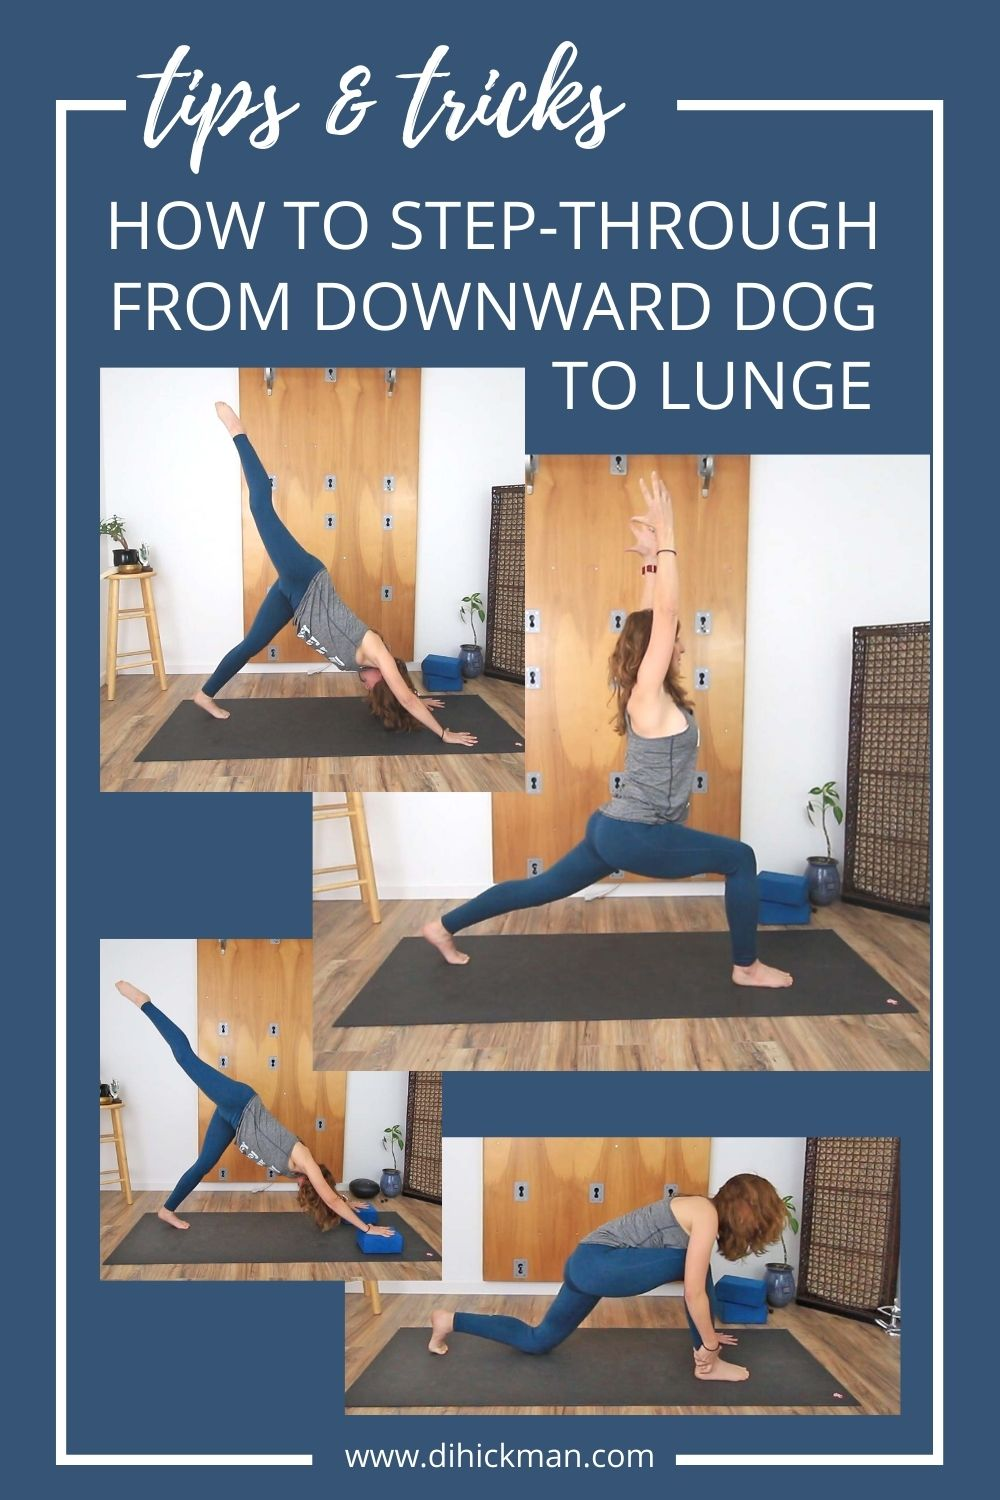 tips & tricks, how to step through from downward dog to lunge